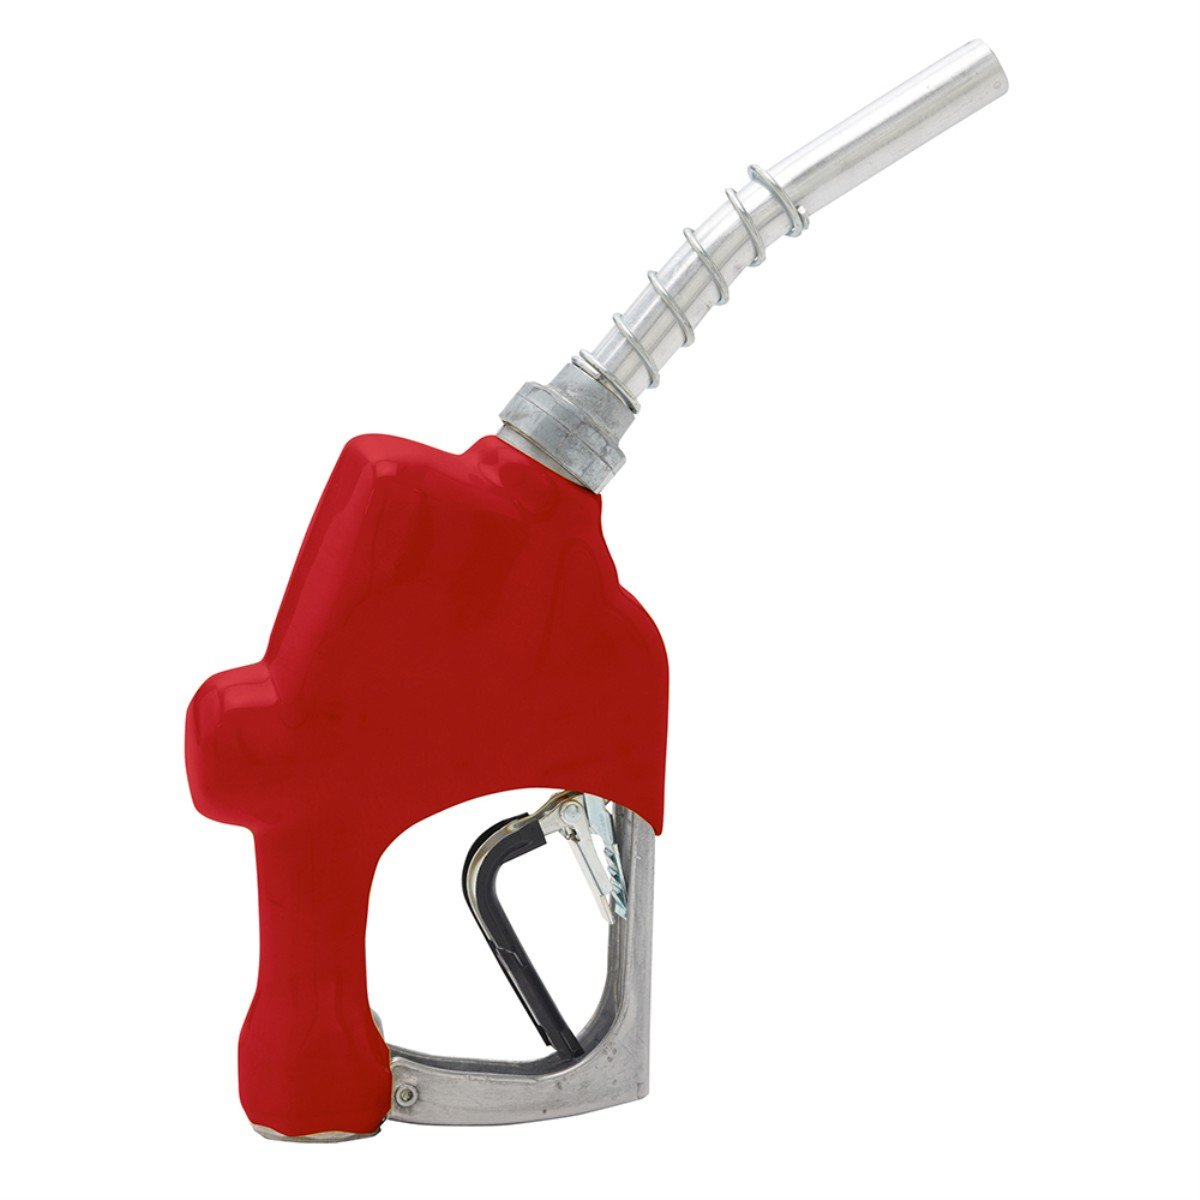 Husky 209804N-02 New 1A Unleaded Nozzle with 3-Notch Hold Open Clip and Red Hand Guard